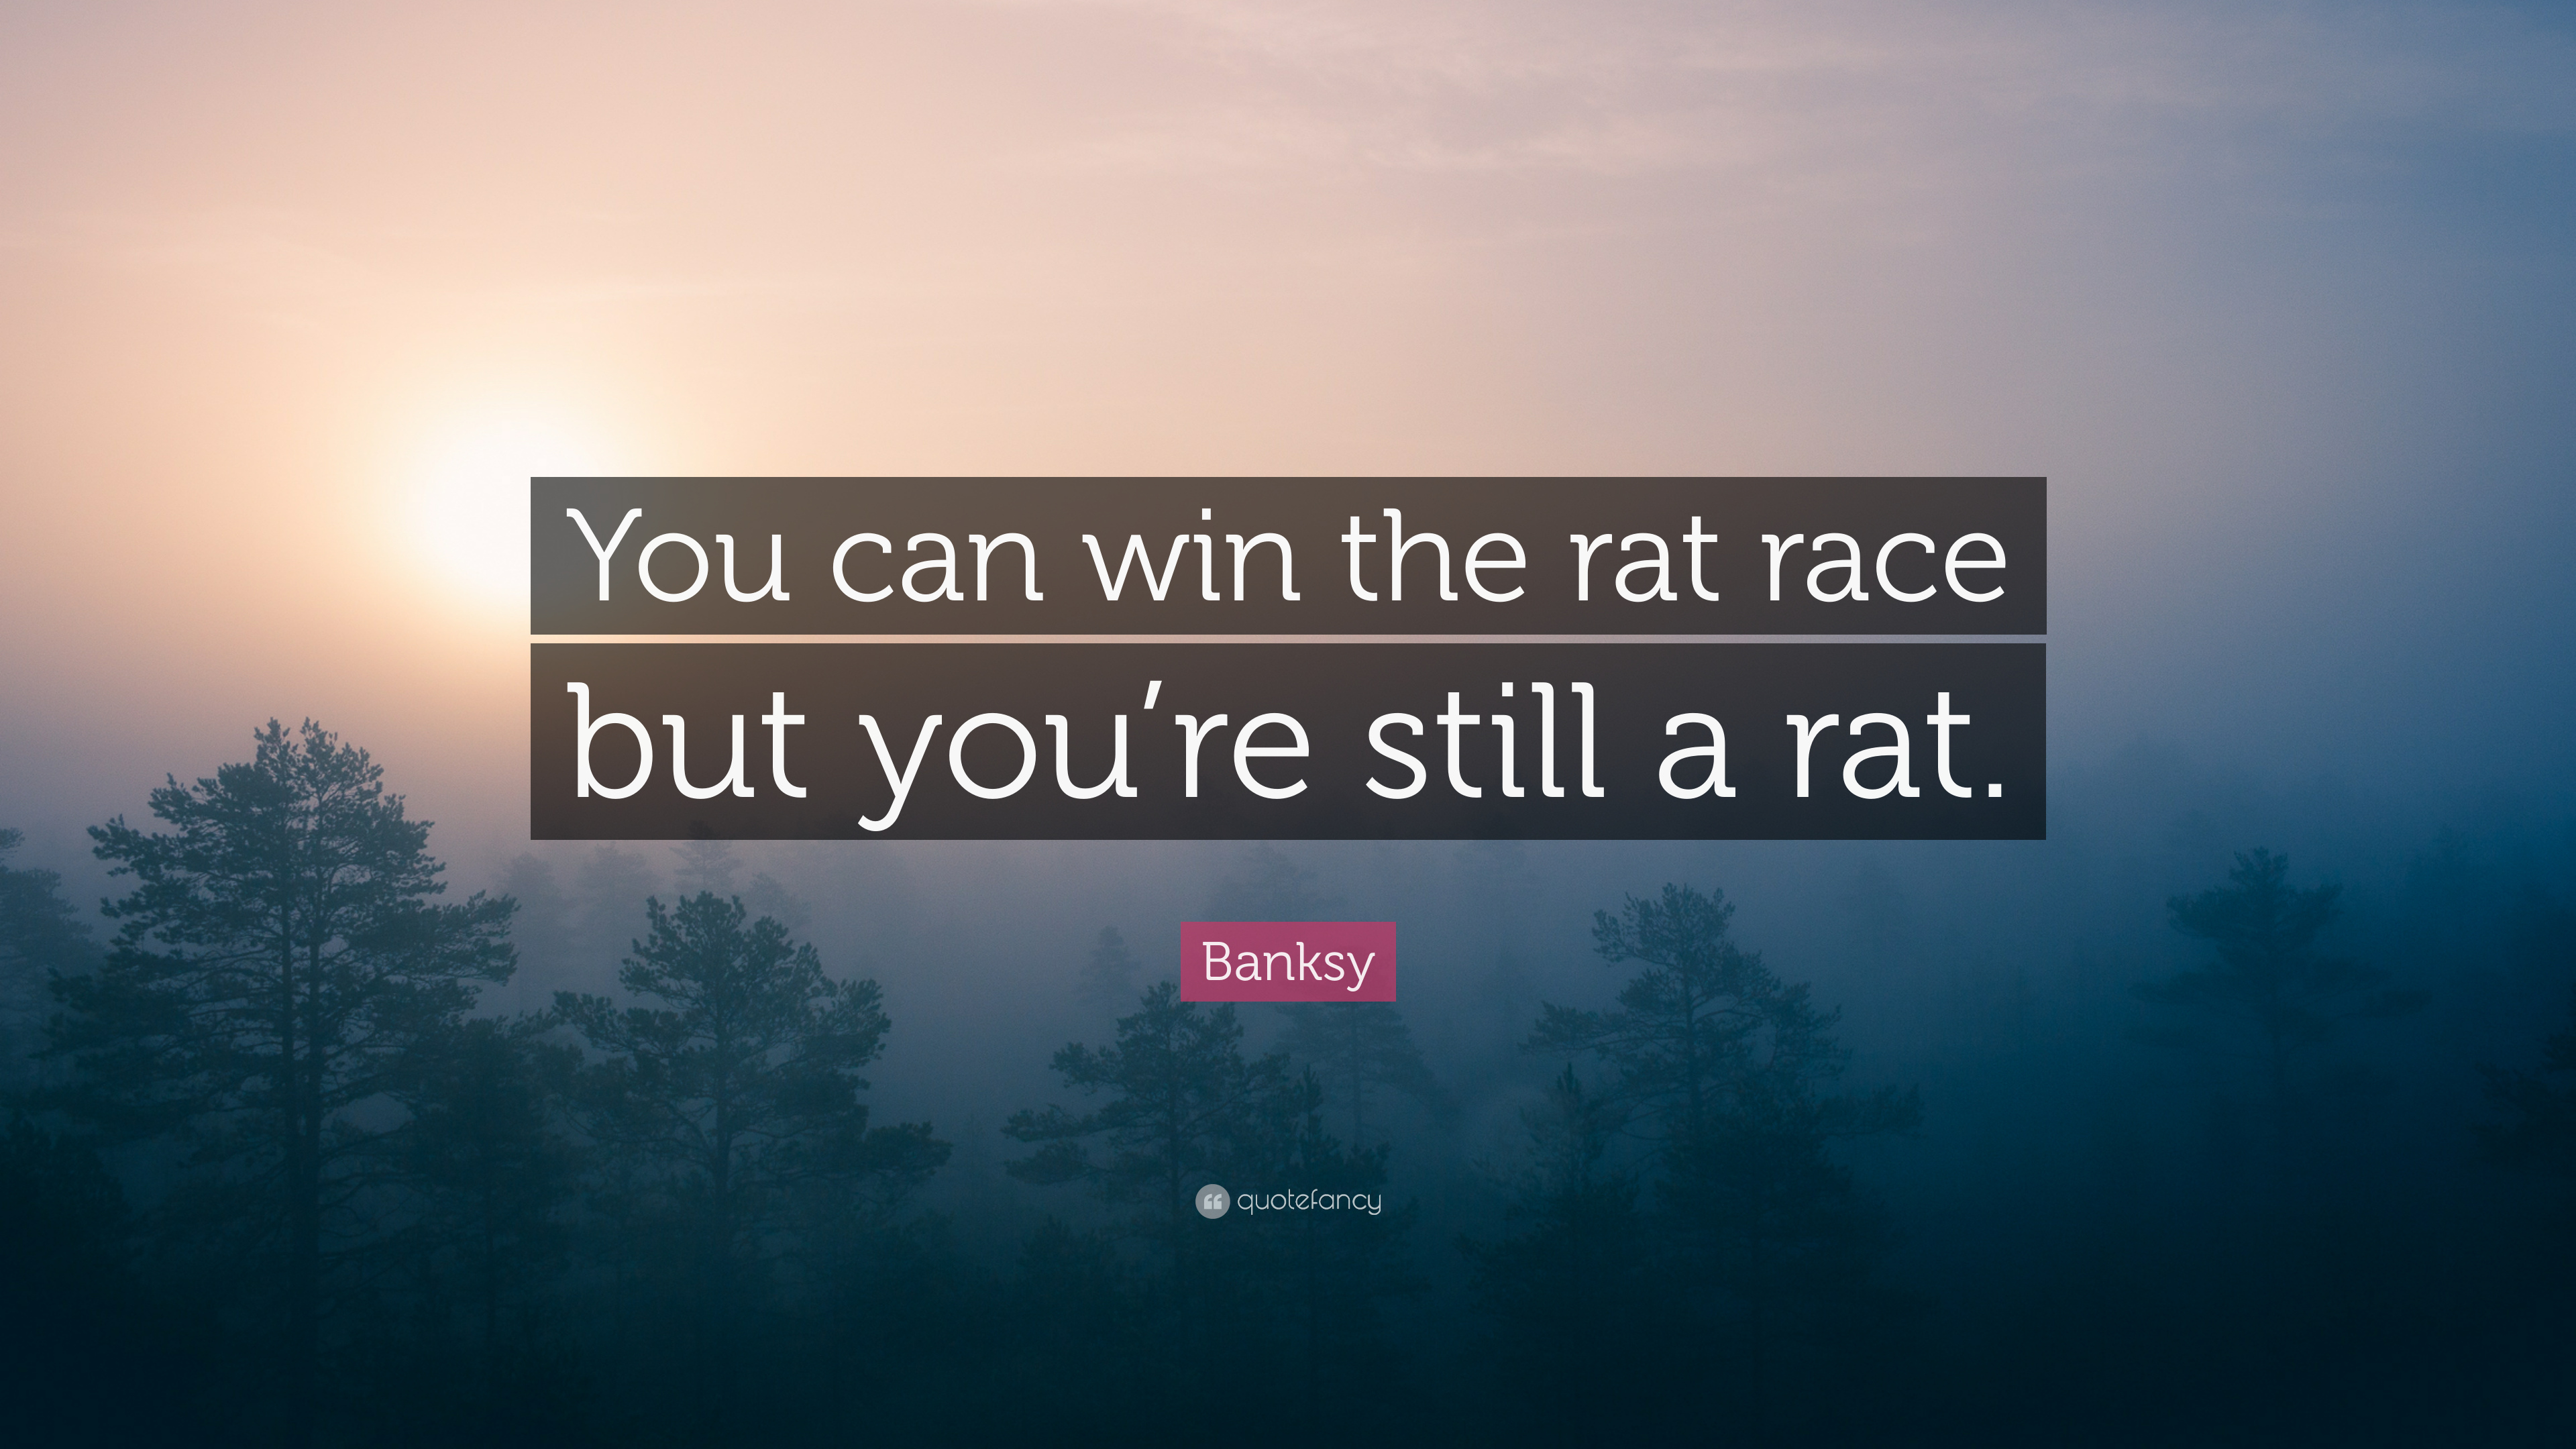 To win a rat race you